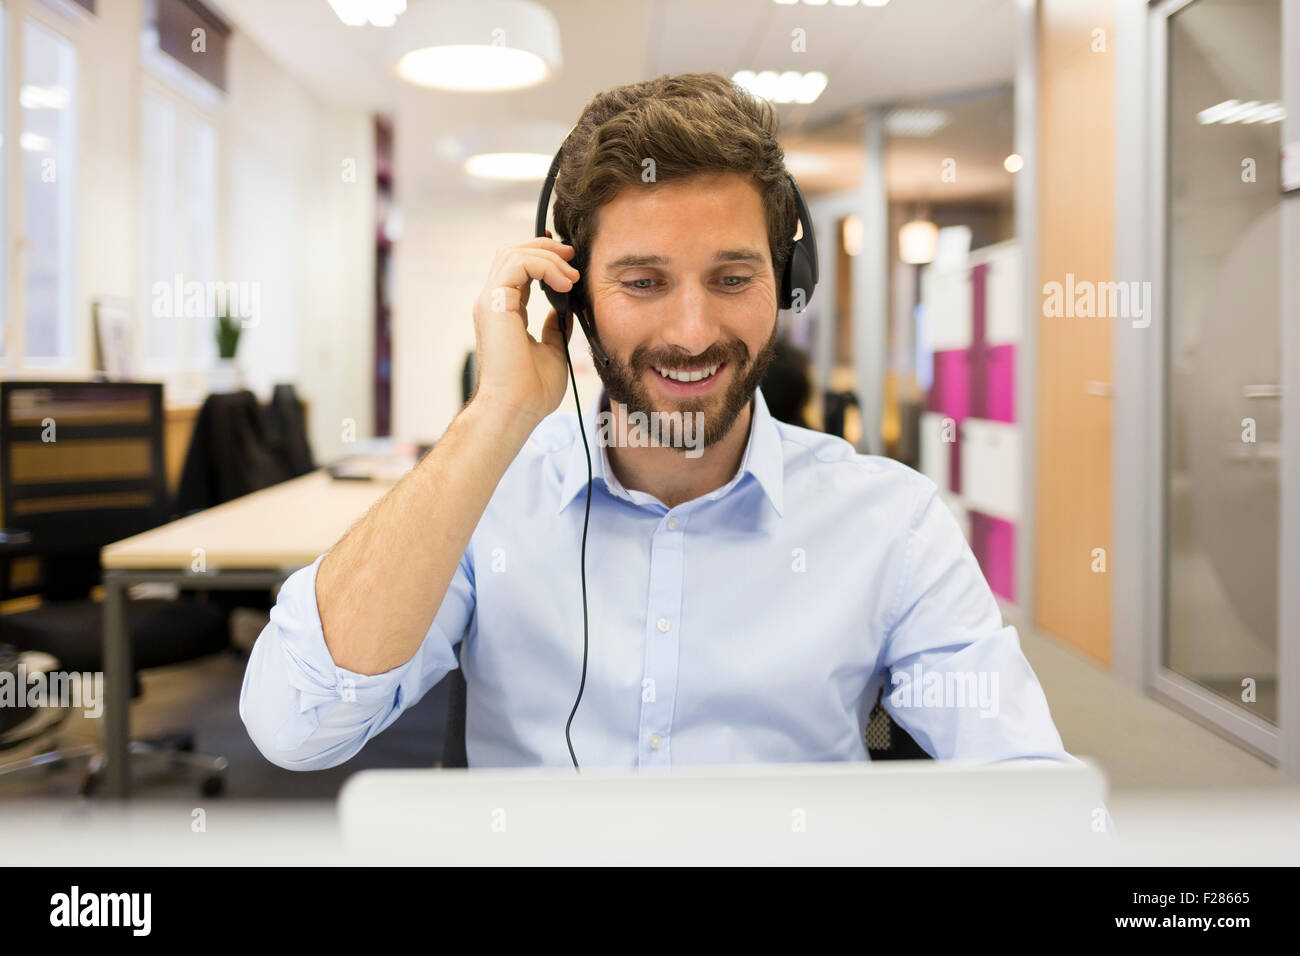 Portrait of smiling man wearing headset using laptop Banque D'Images